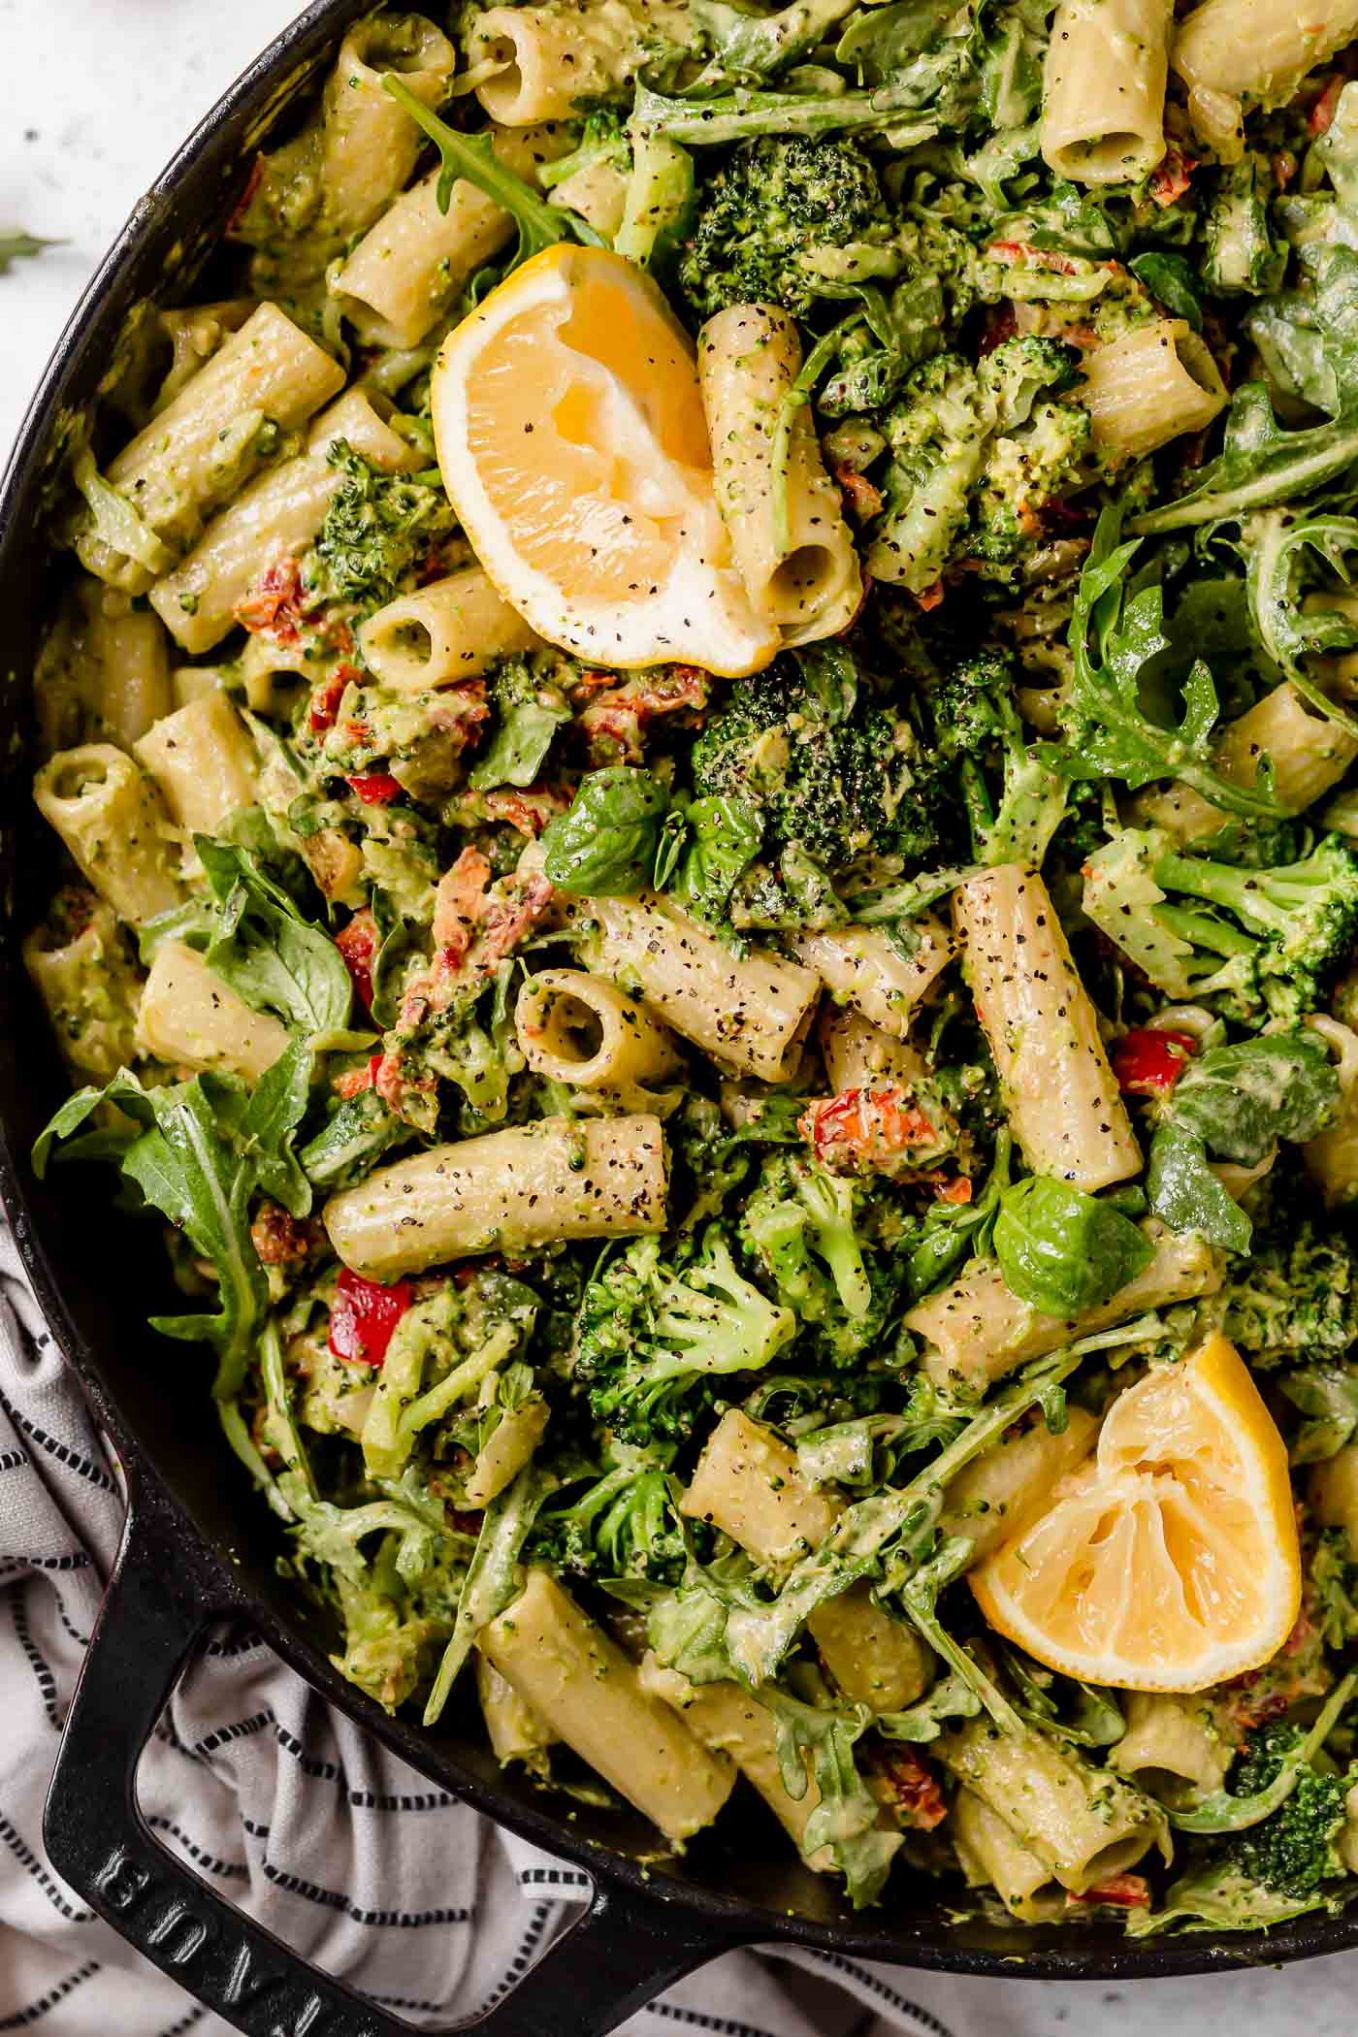 lemony basil creamy vegan pasta with broccoli & sundried tomatoes